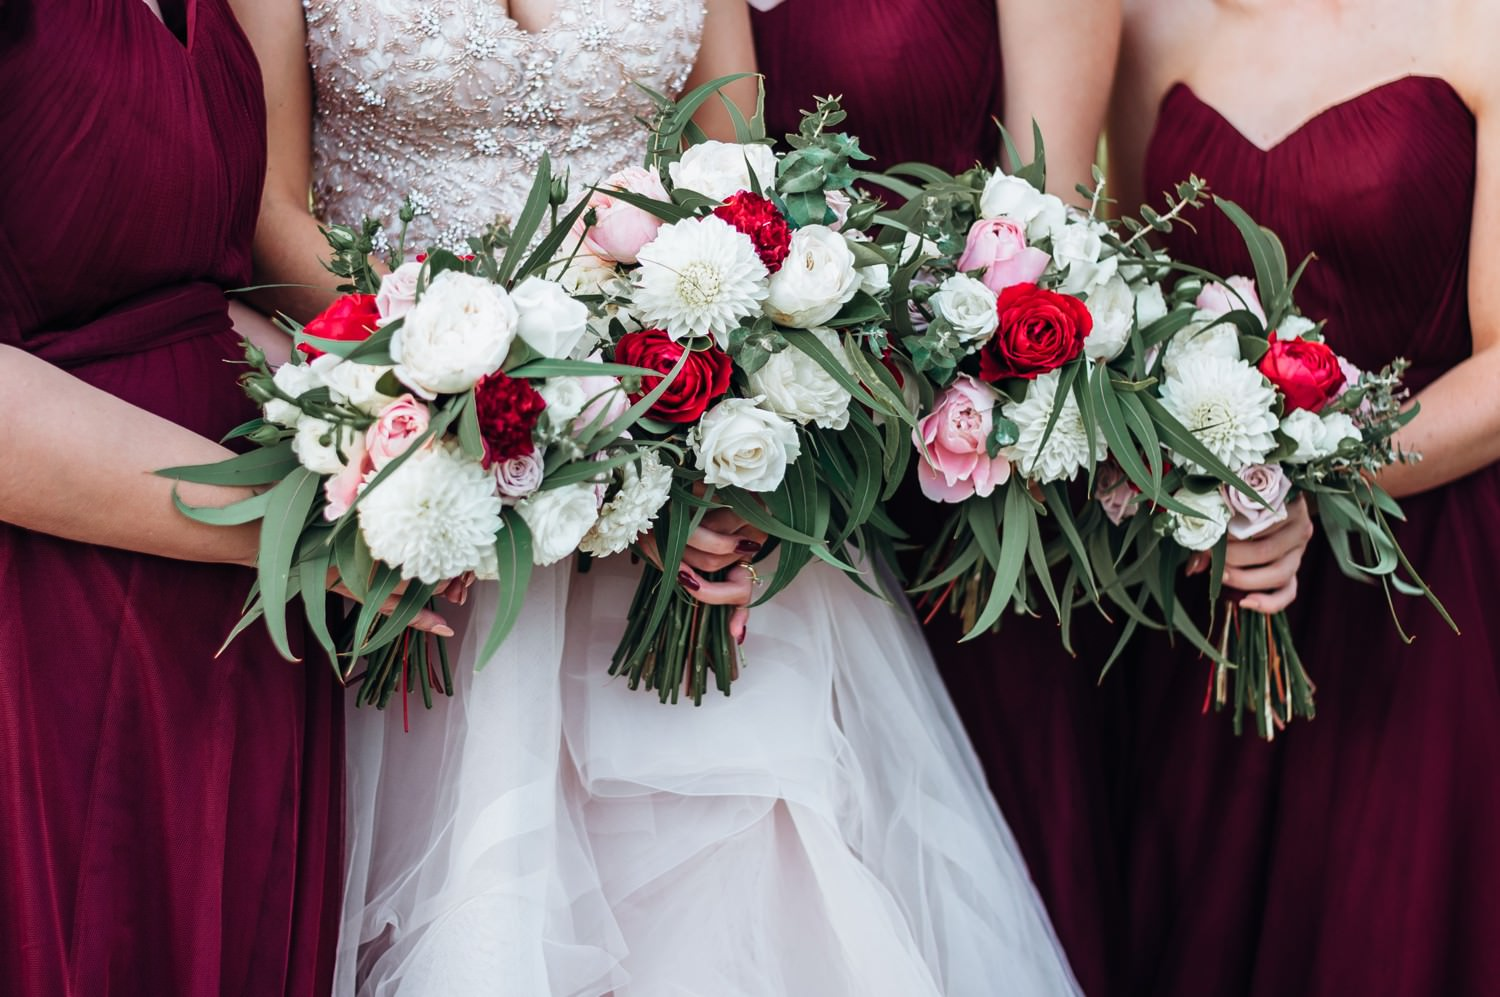 Bouquets with red, pink and white flowers